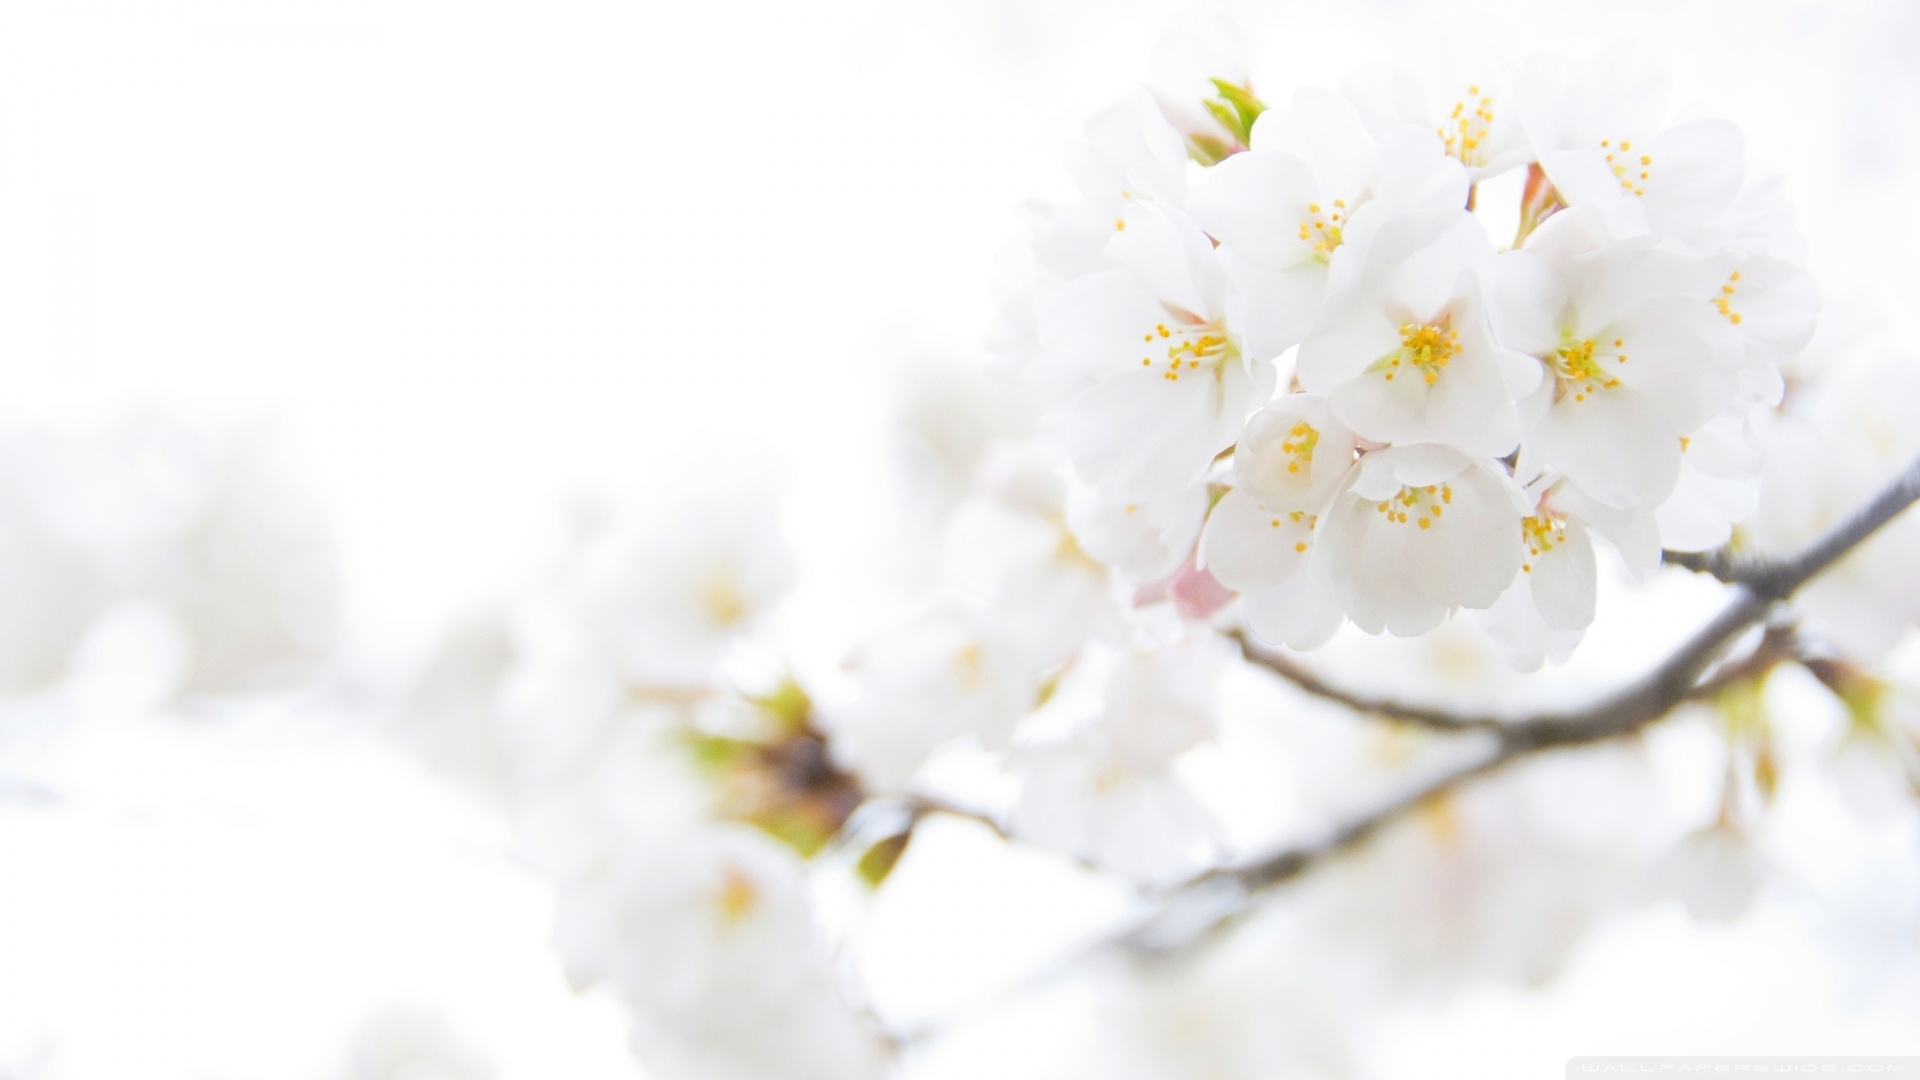 Free photos of white flowers png free library 17 Best ideas about White Flower Wallpaper on Pinterest | White ... png free library